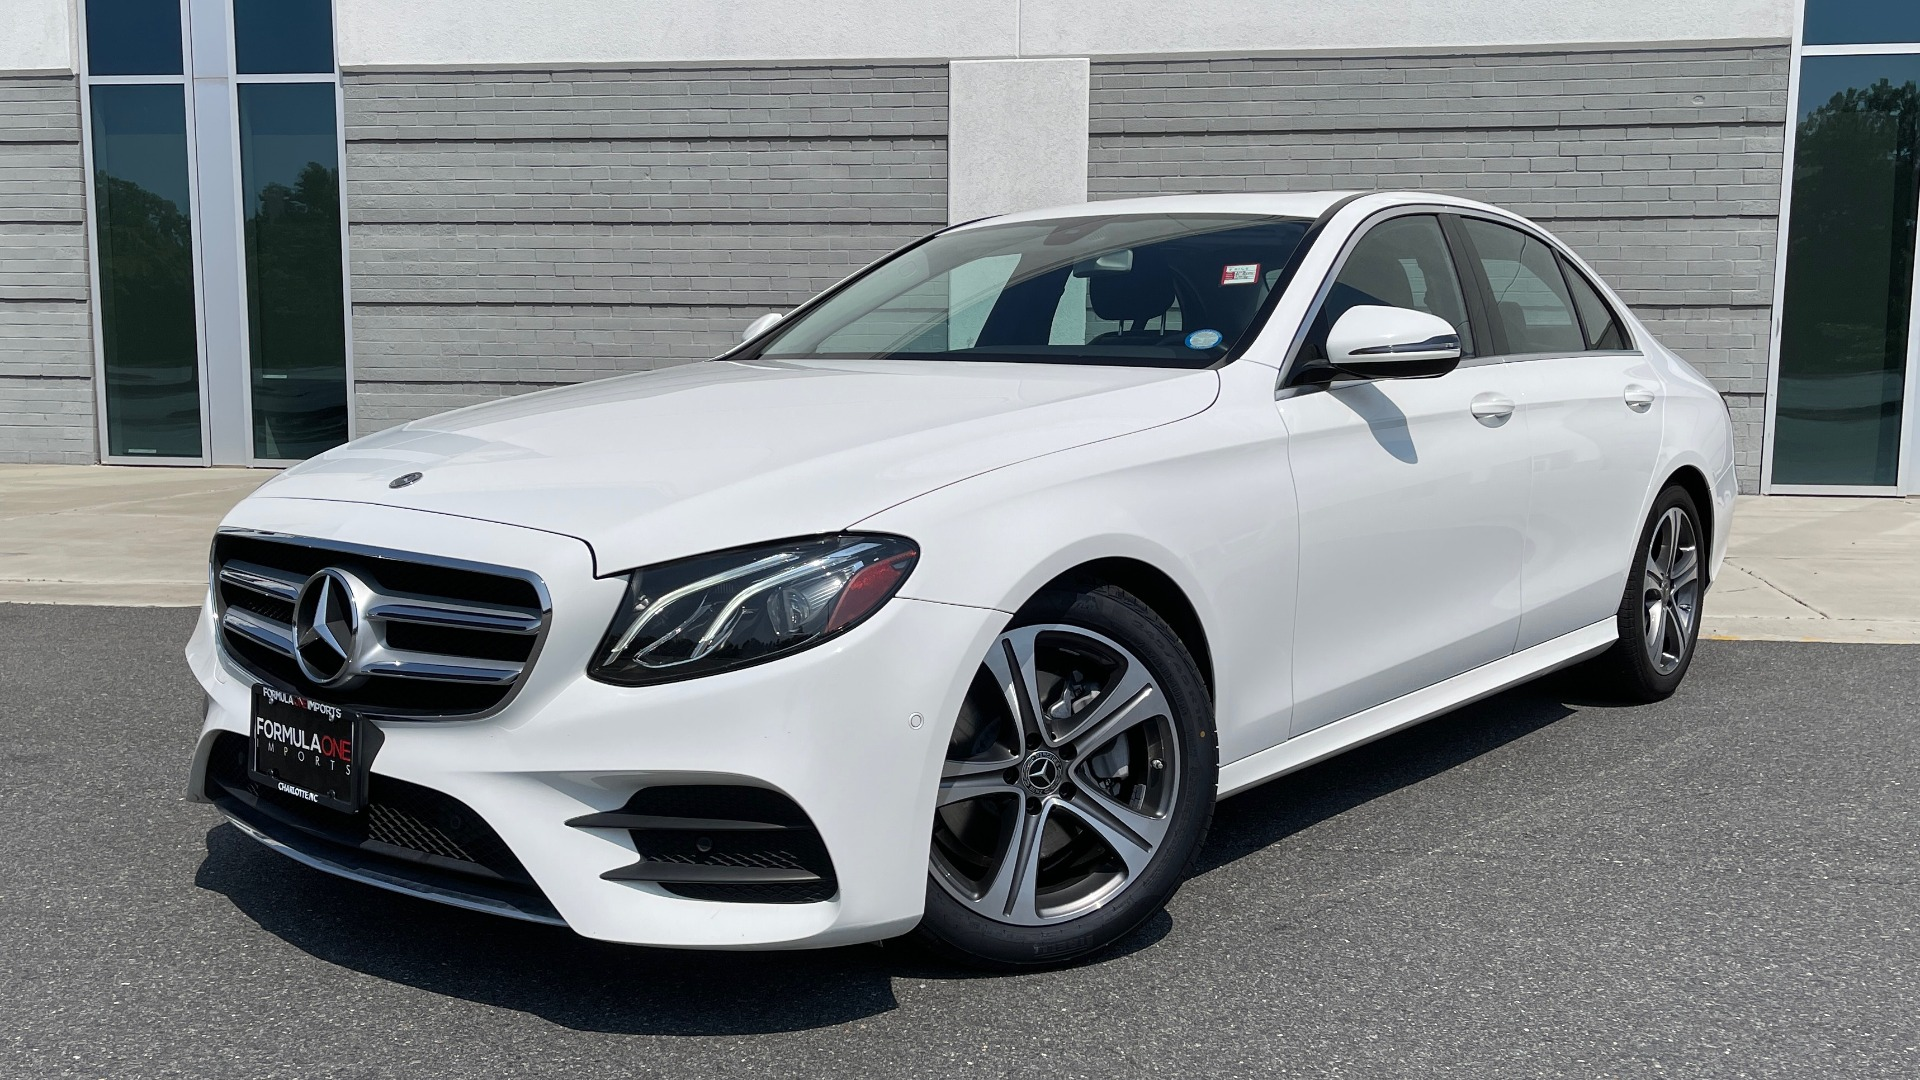 Used 2018 Mercedes-Benz E-CLASS E 300 / 2.0L I4 TURBO / NAV / BSA / SUNROOF / REARVIEW for sale Sold at Formula Imports in Charlotte NC 28227 1